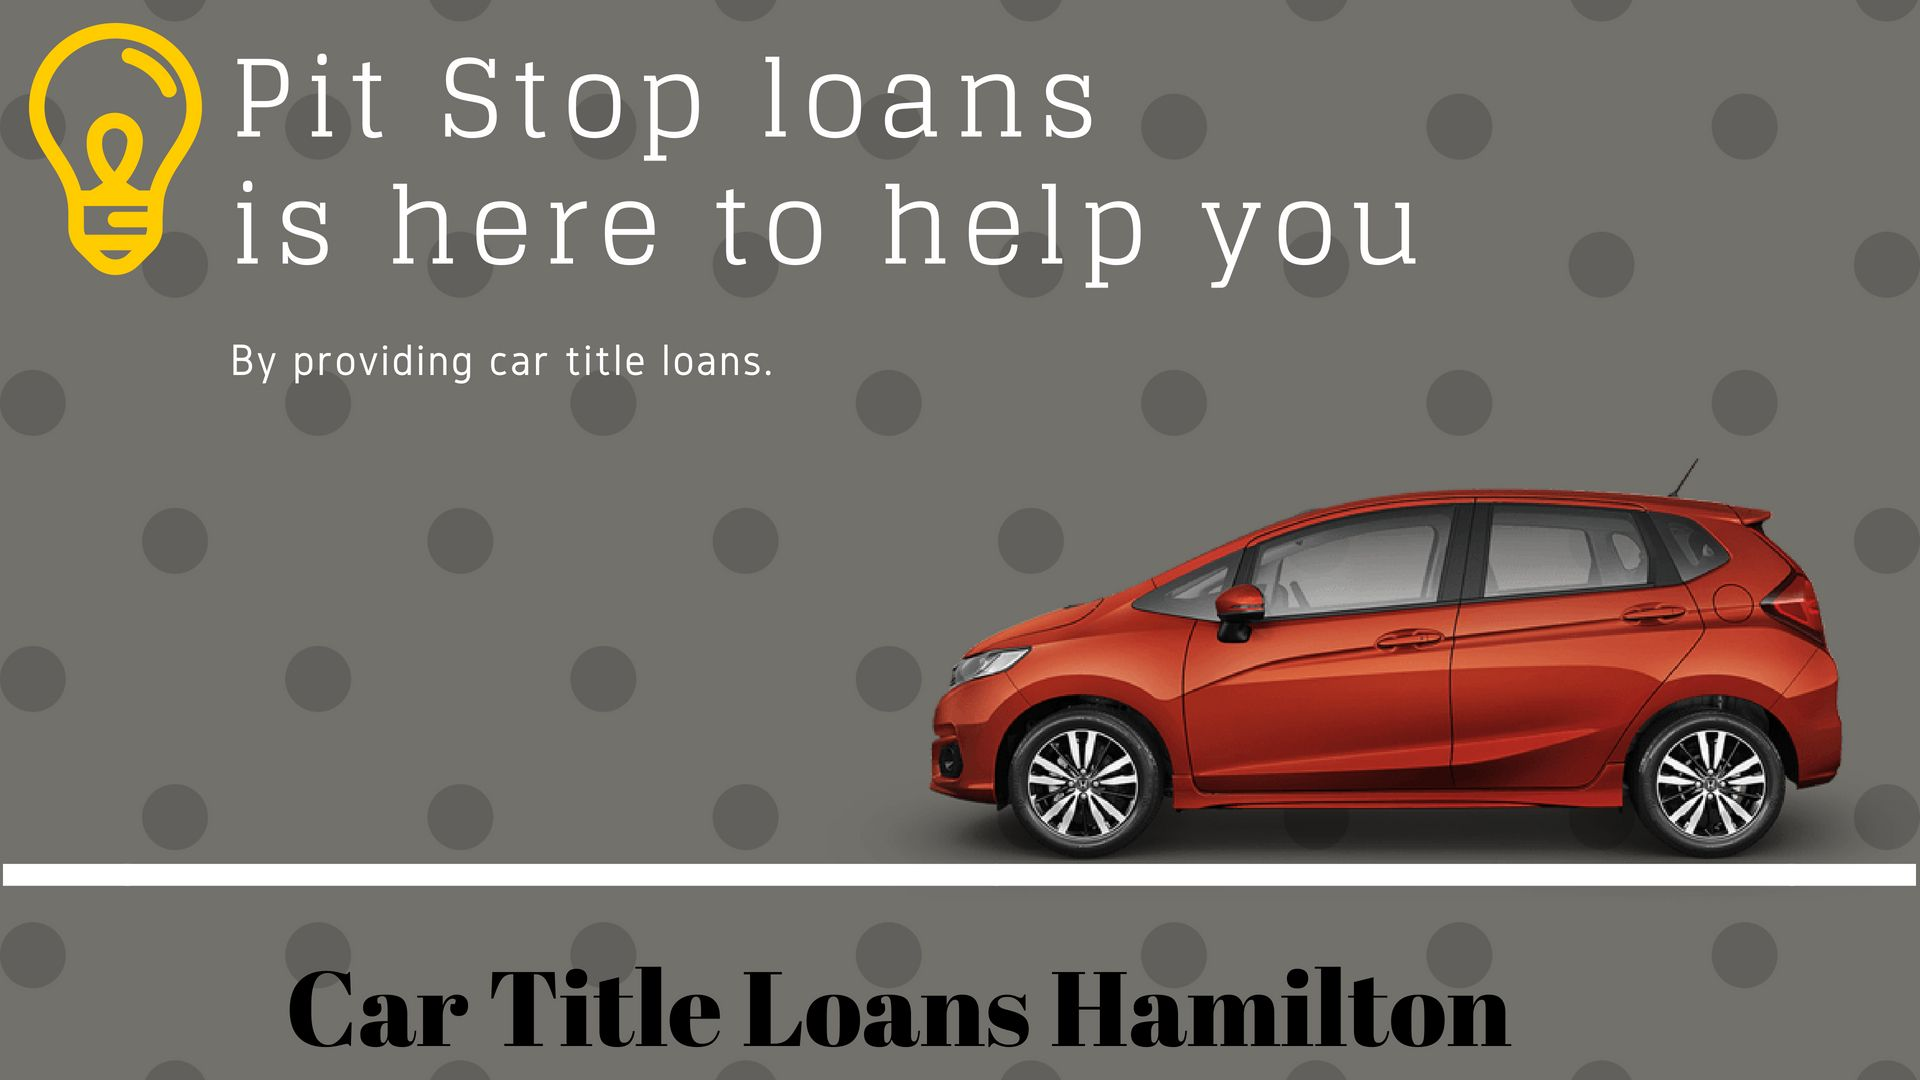 Pit Stop loans made it too easy that anyone in need can